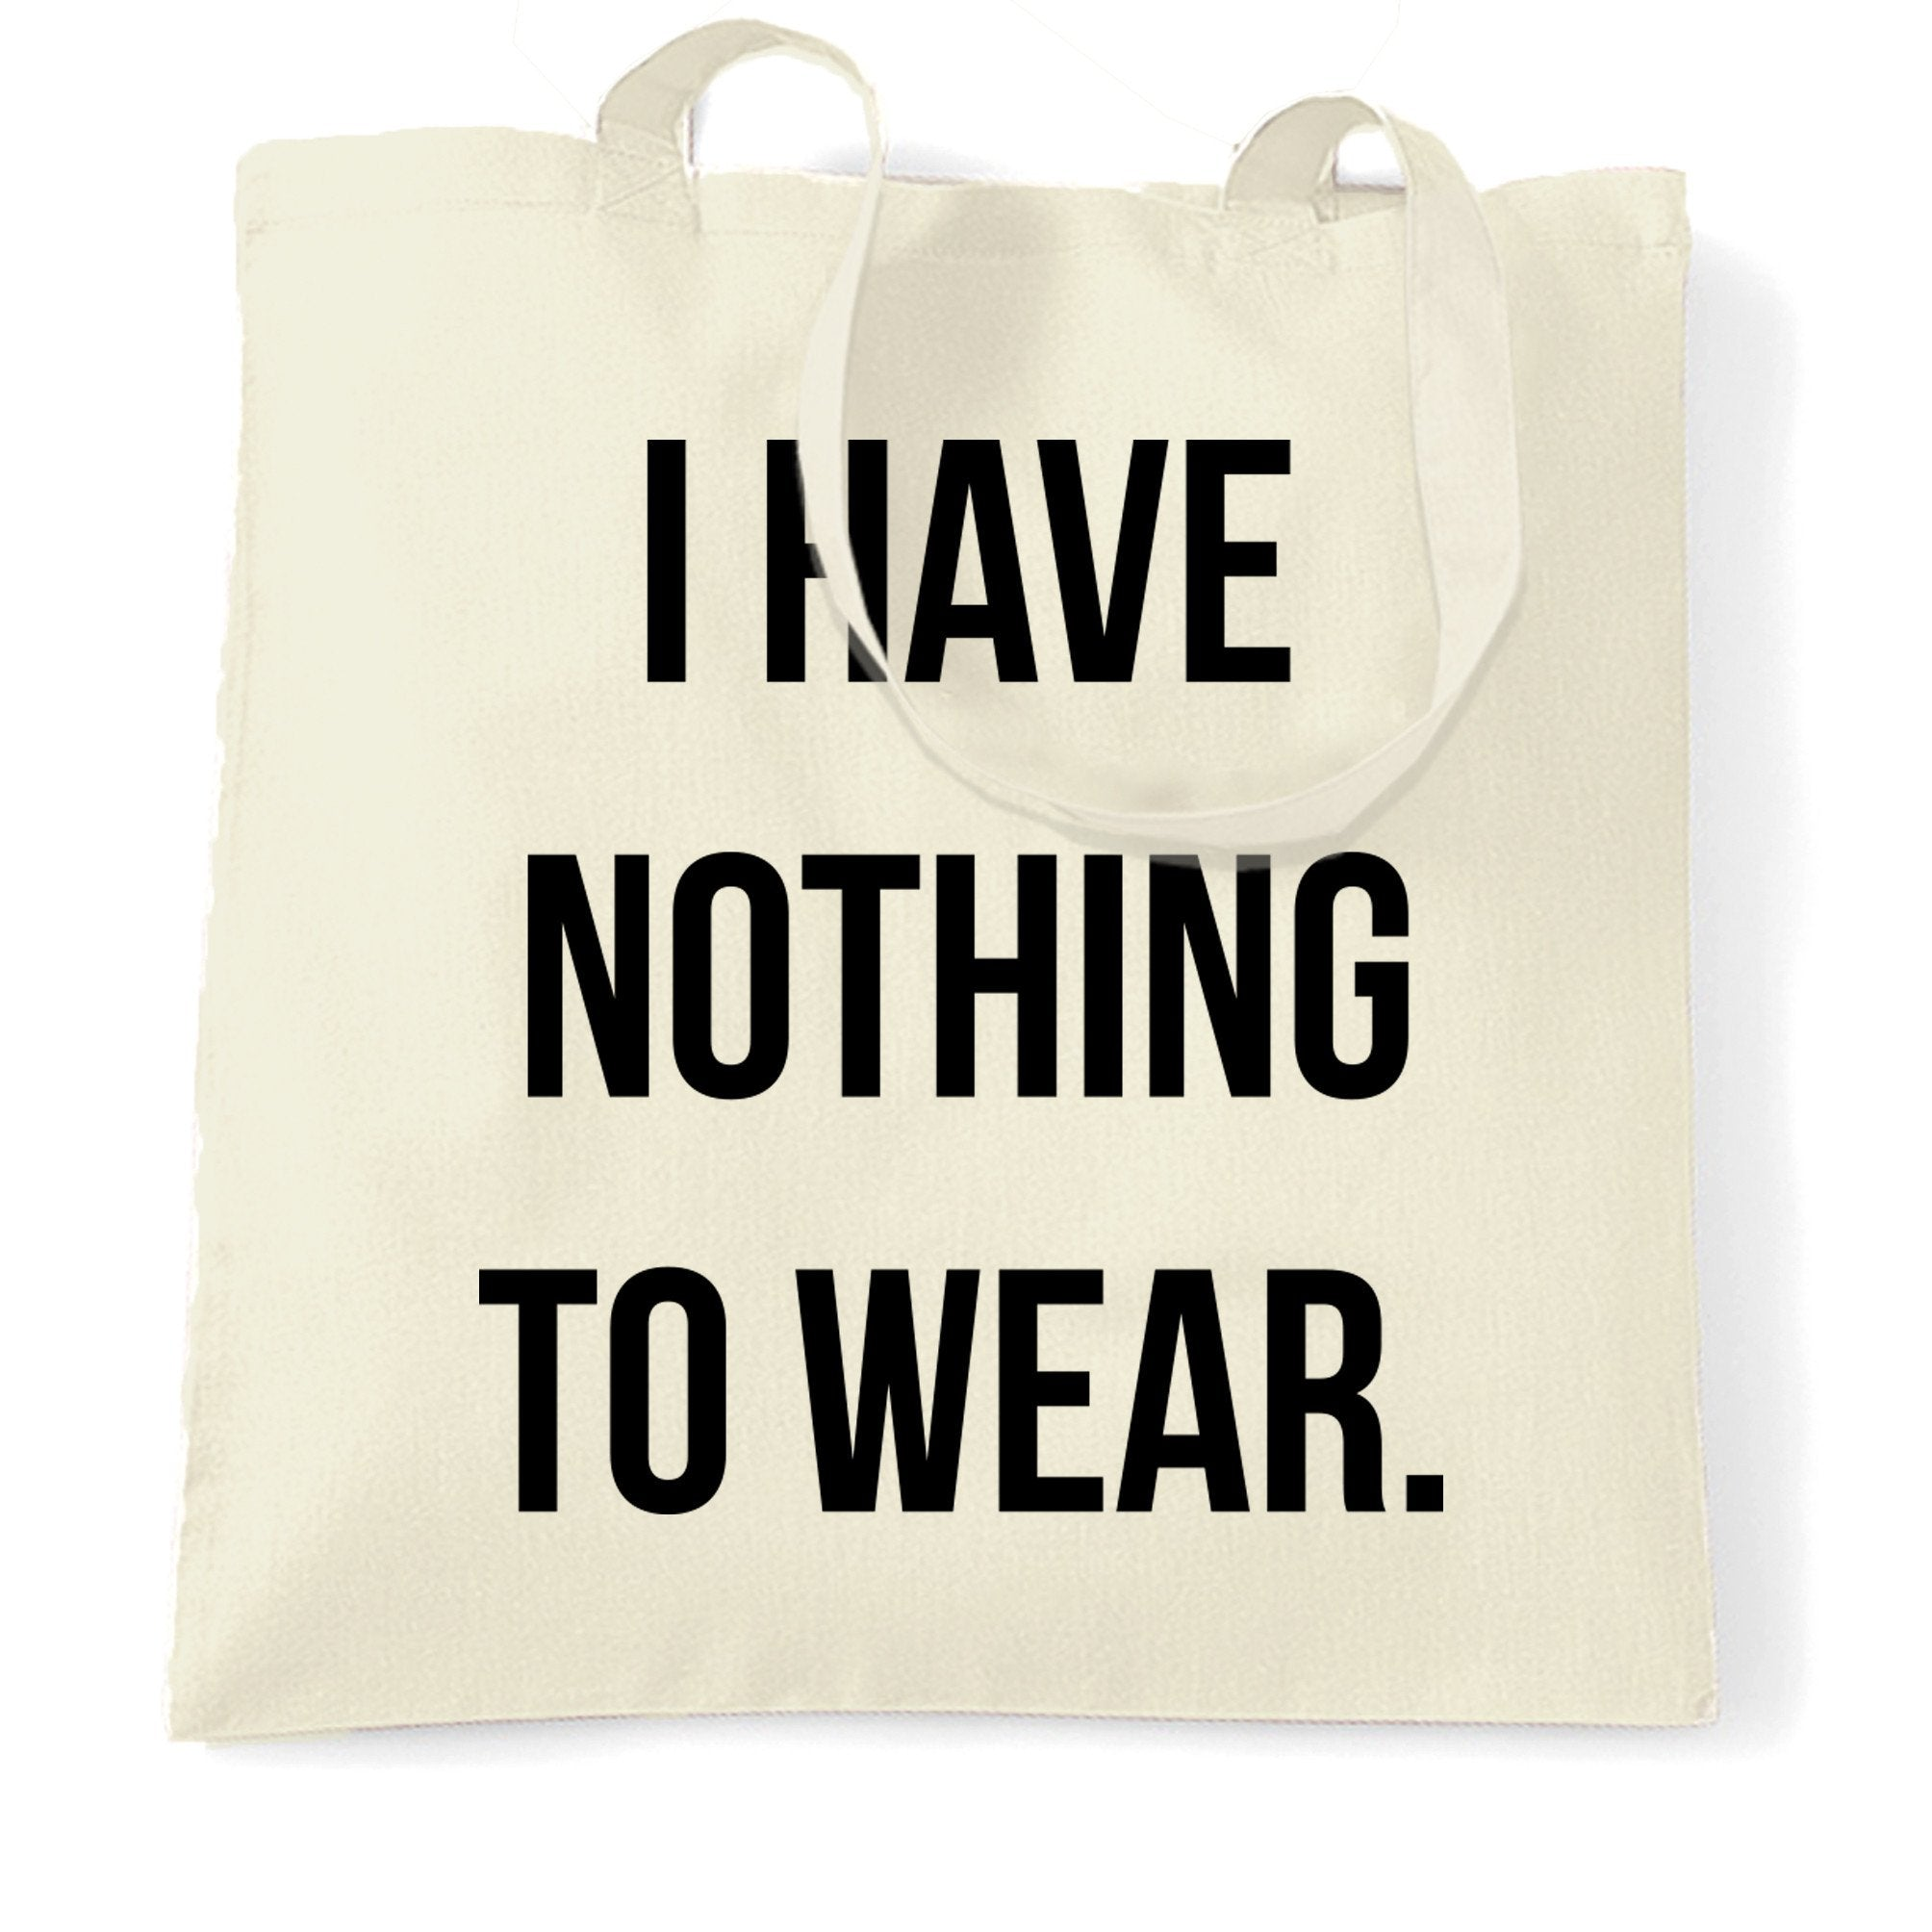 Novelty Slogan Tote Bag I Have Nothing To Wear.